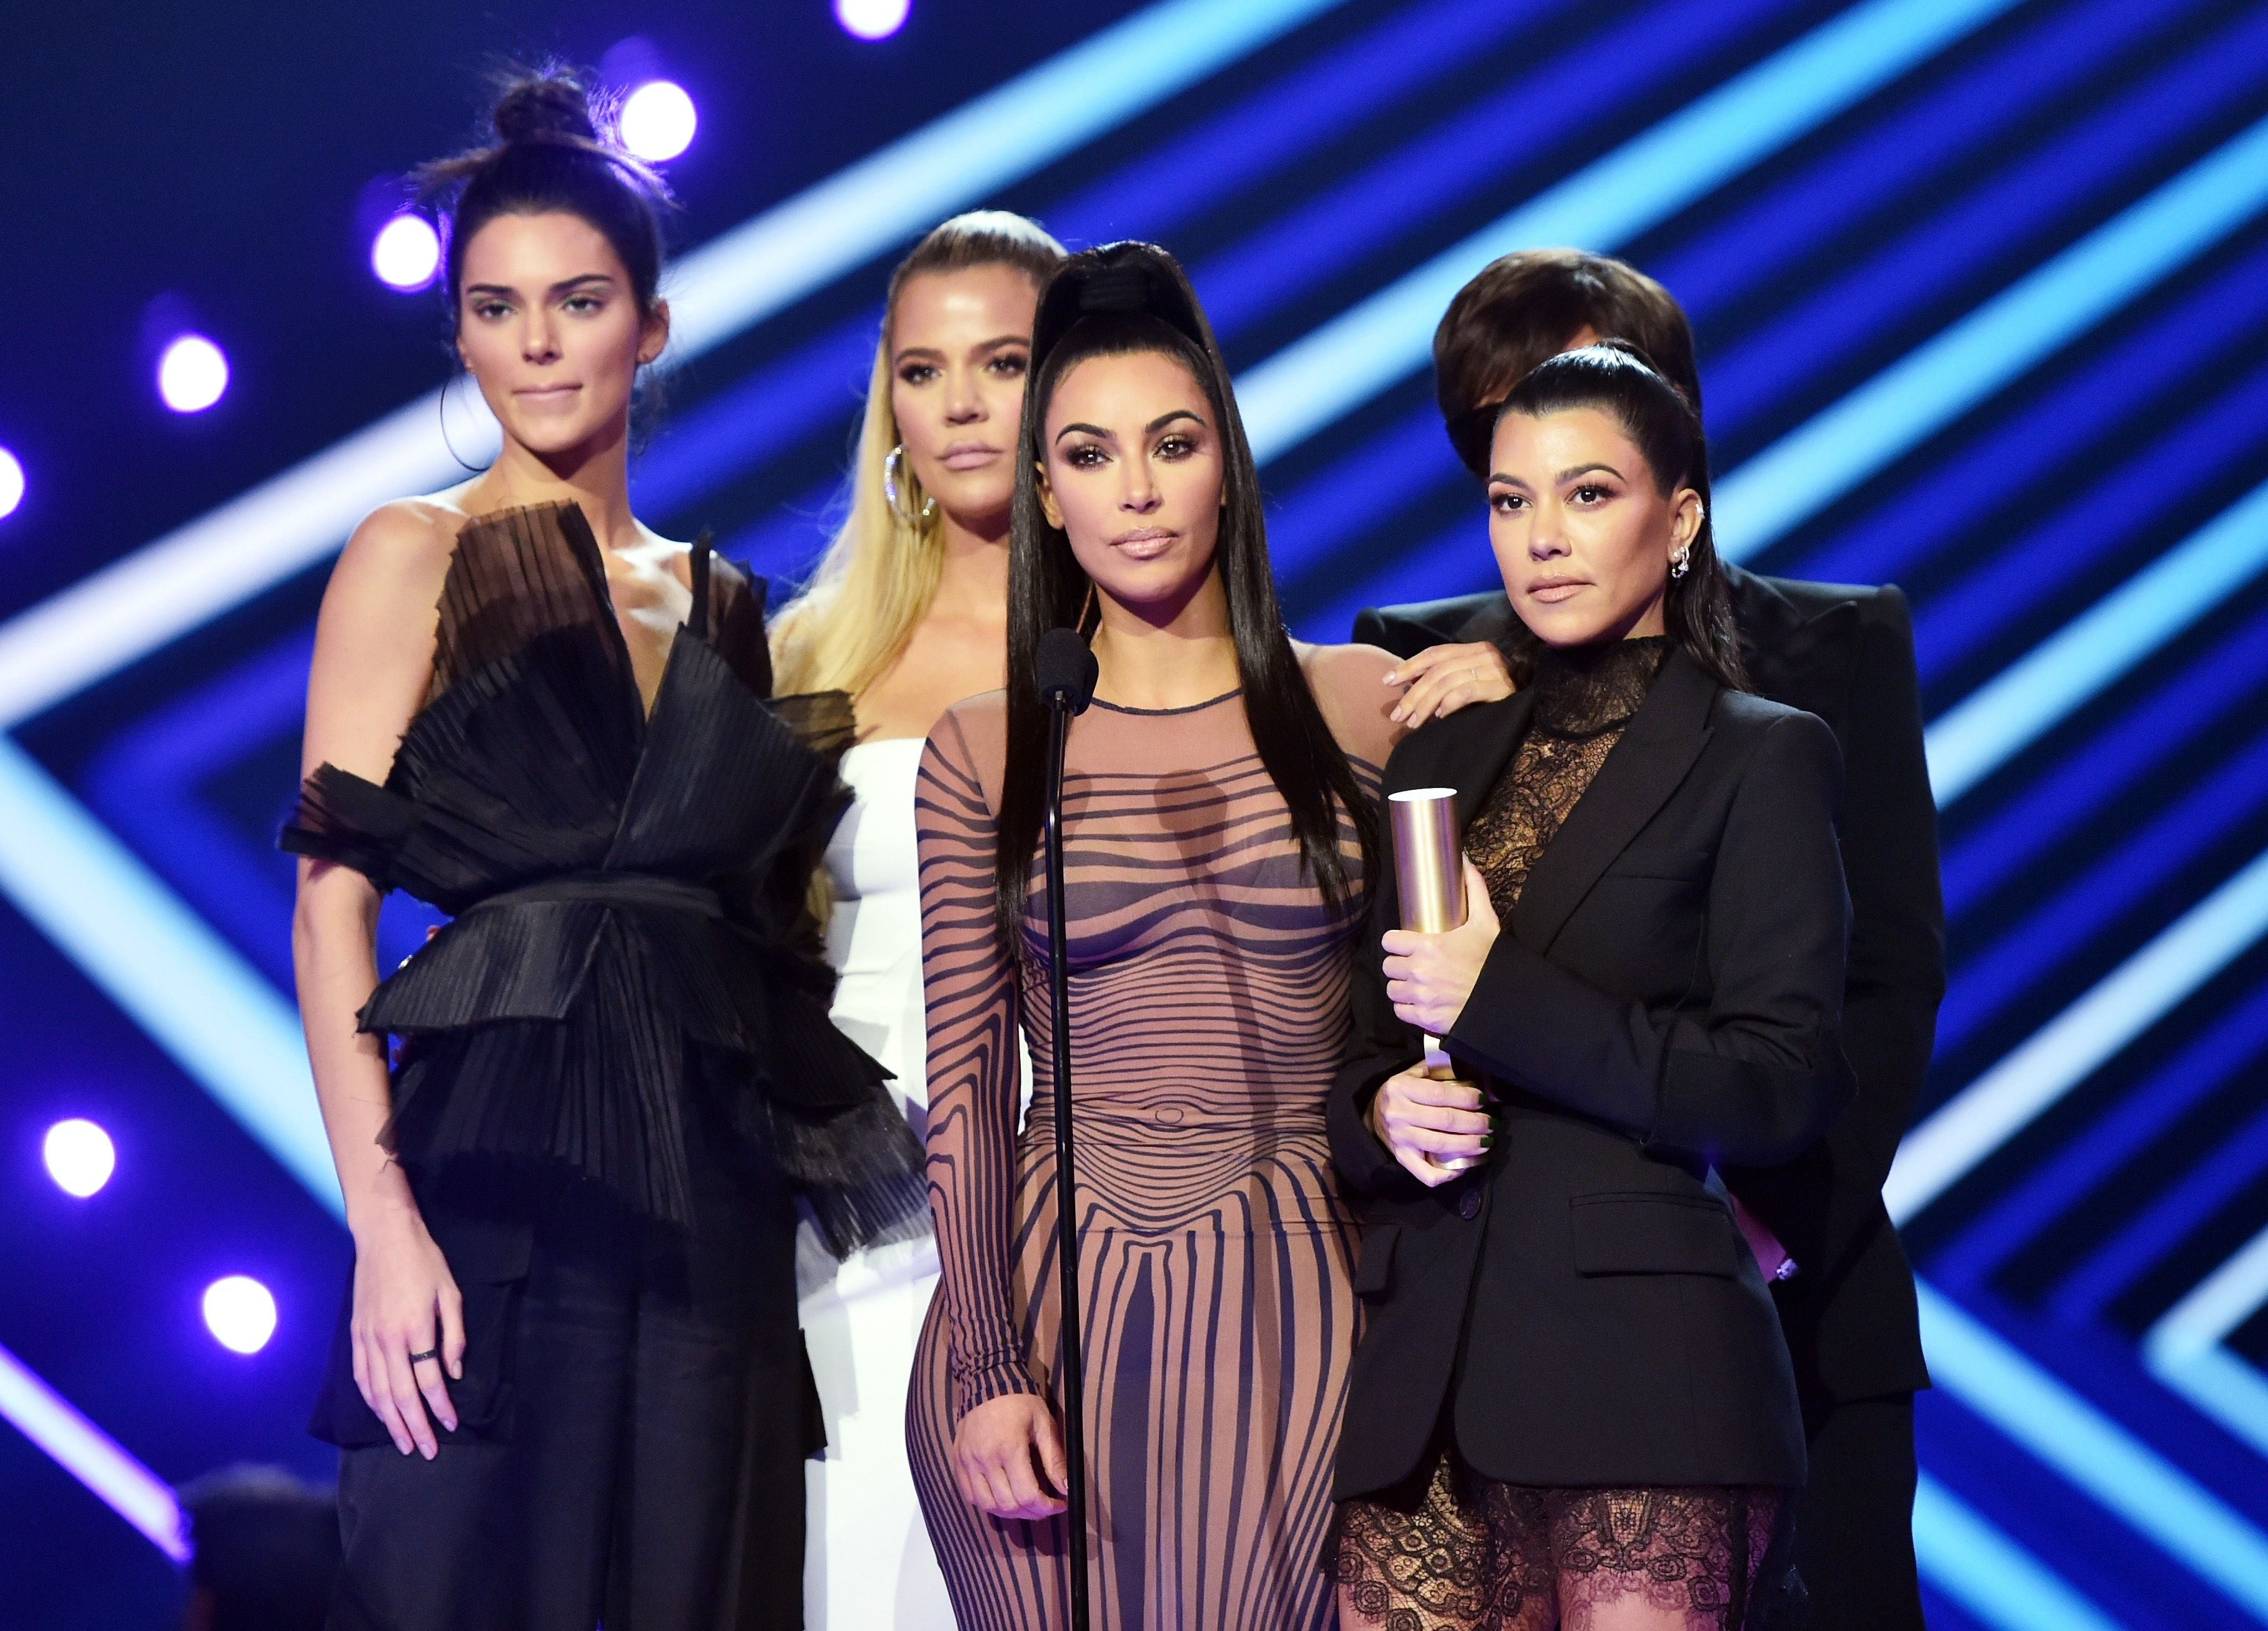 The Kardashian sisters / Getty Images